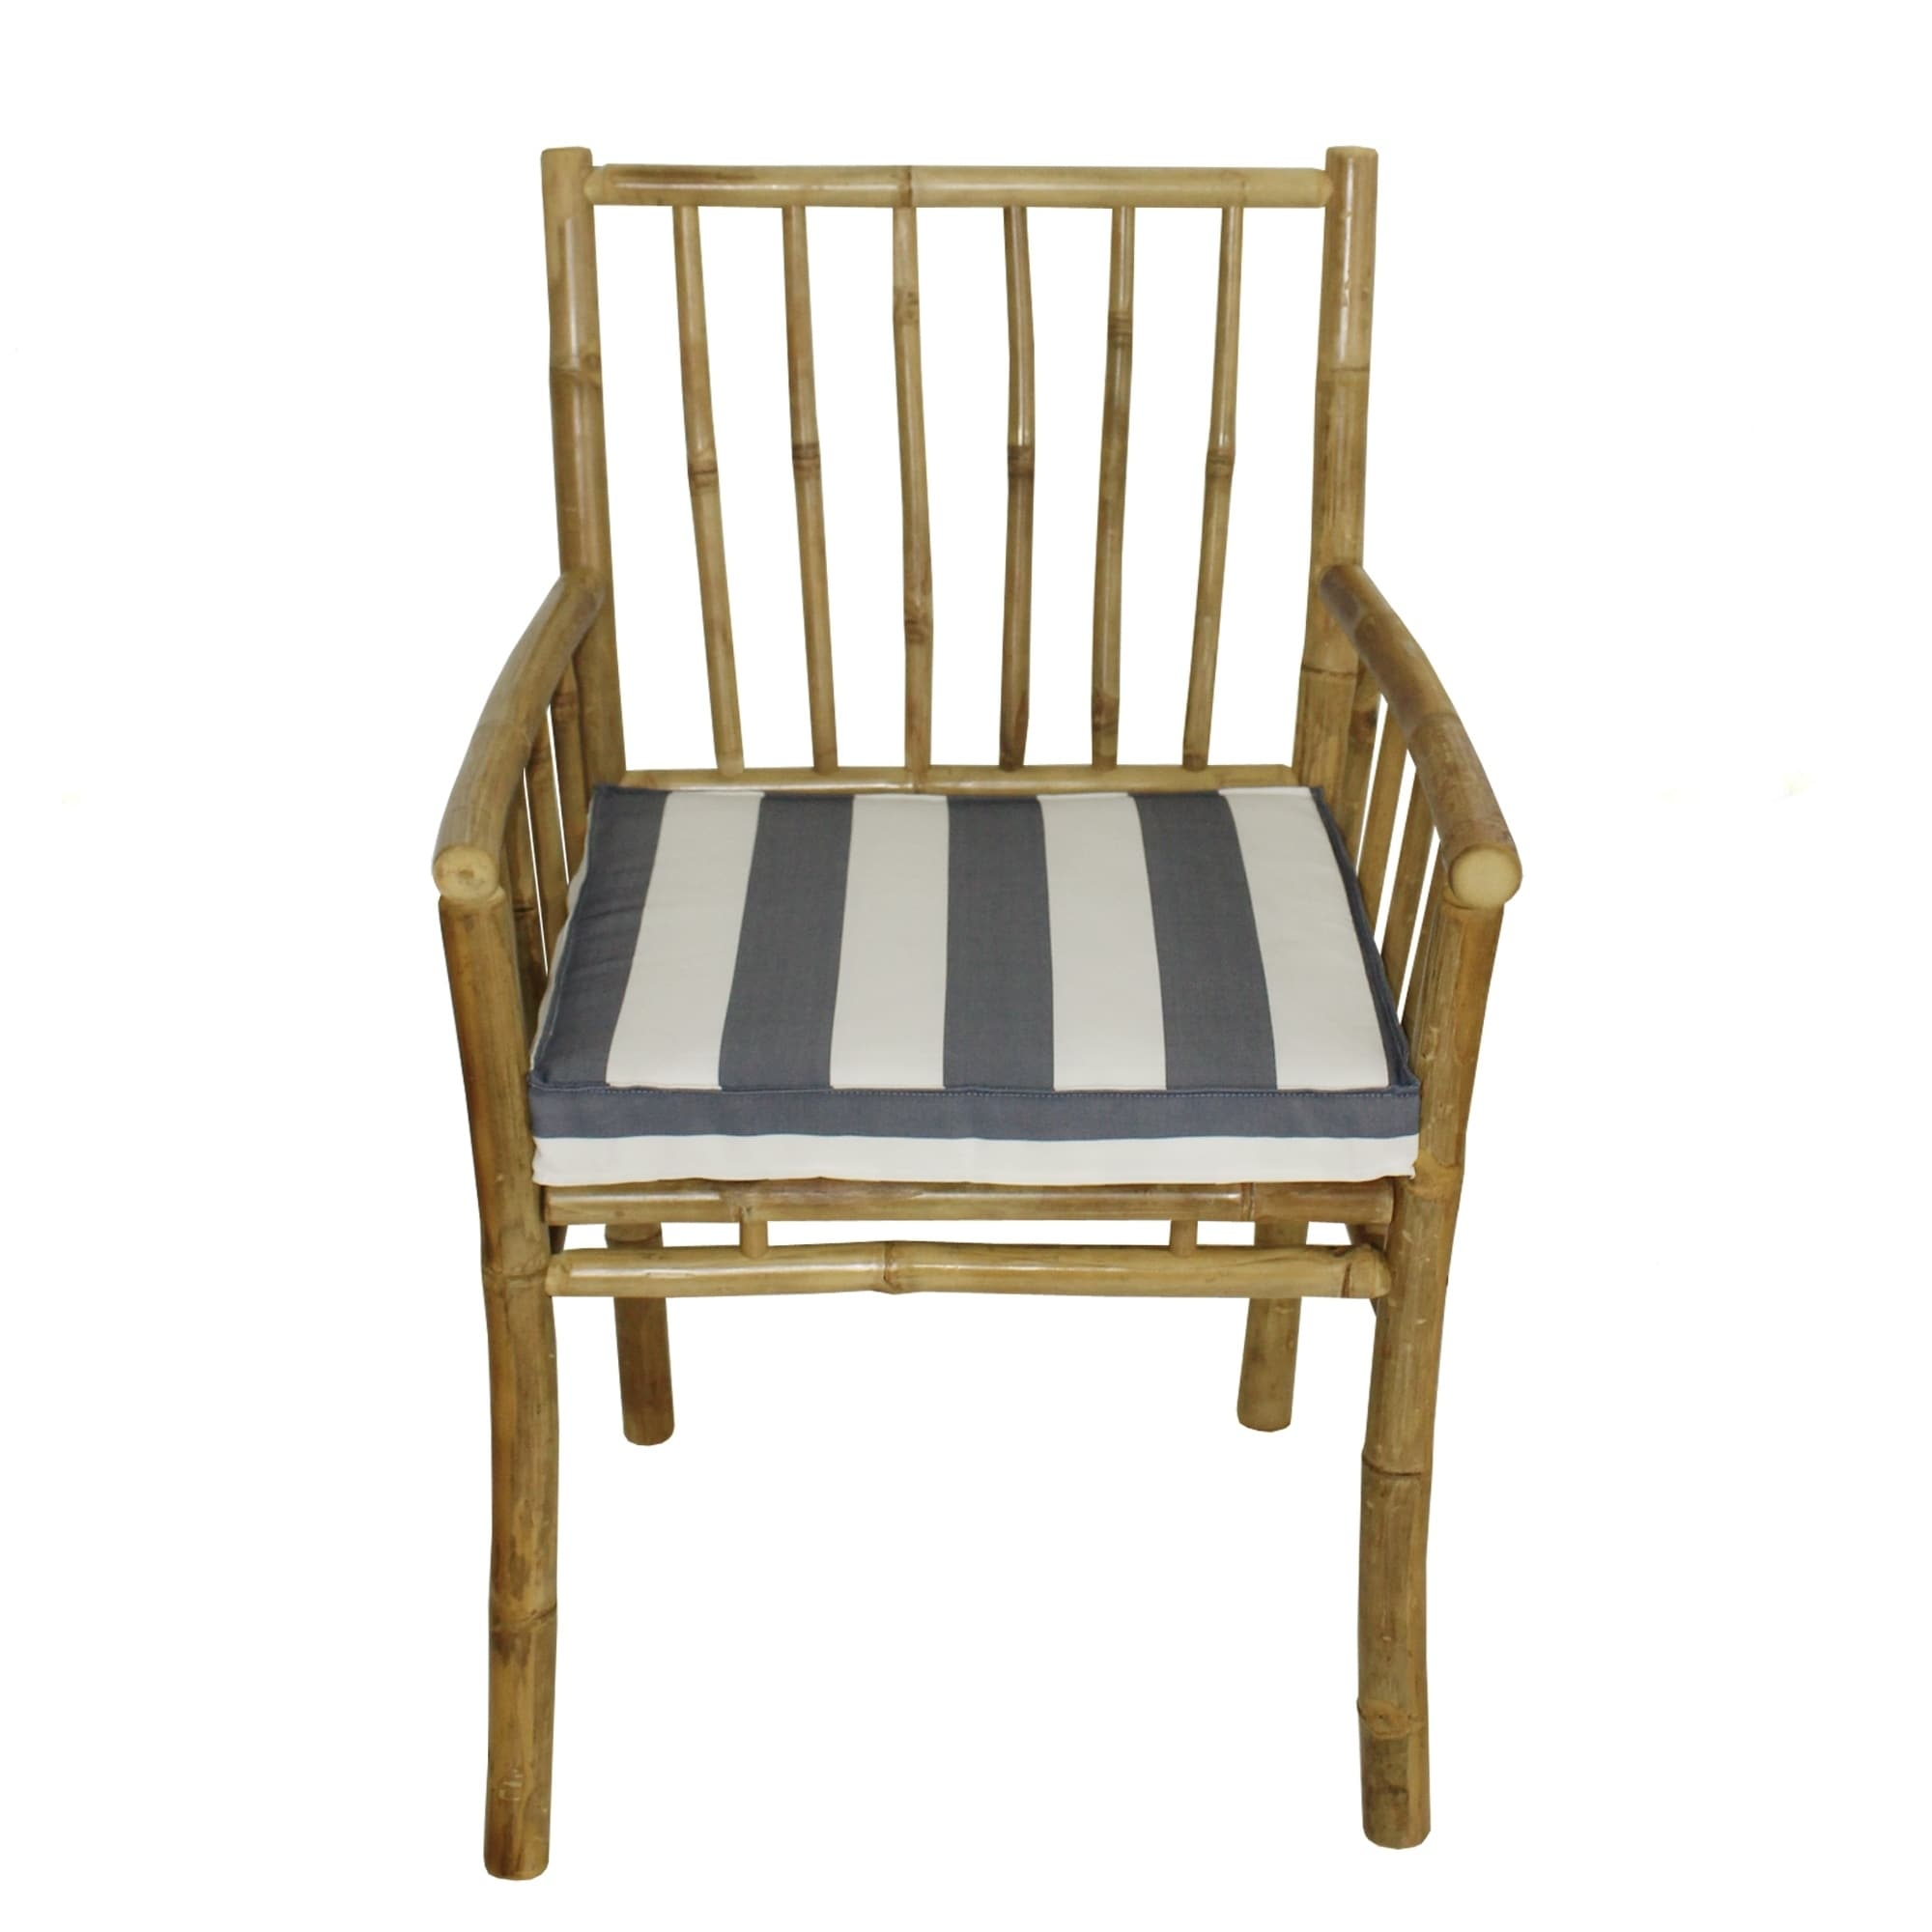 Blue And White Striped Chair Details About Bamboo Accent Dining Chair With Arm Natural Color With Blue White Stripe